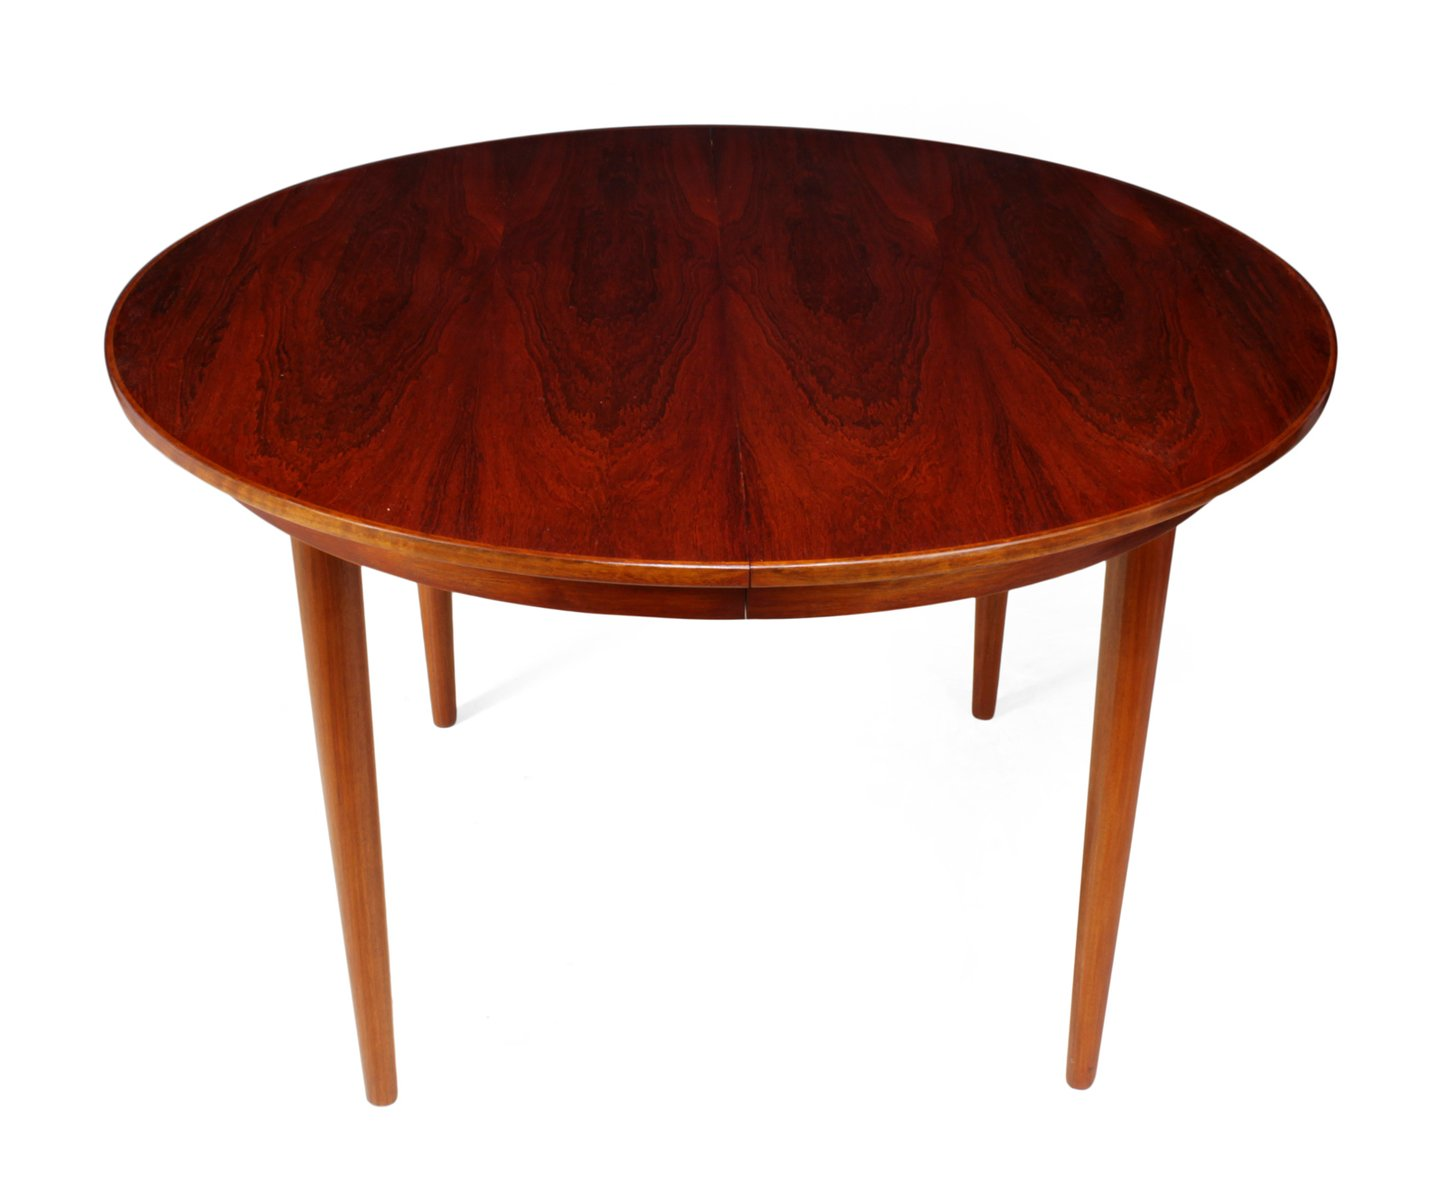 https://cdn10.pamono.com/p/z/2/5/255770_683svnorzc/danish-rosewood-dining-table-1960s-1.jpg